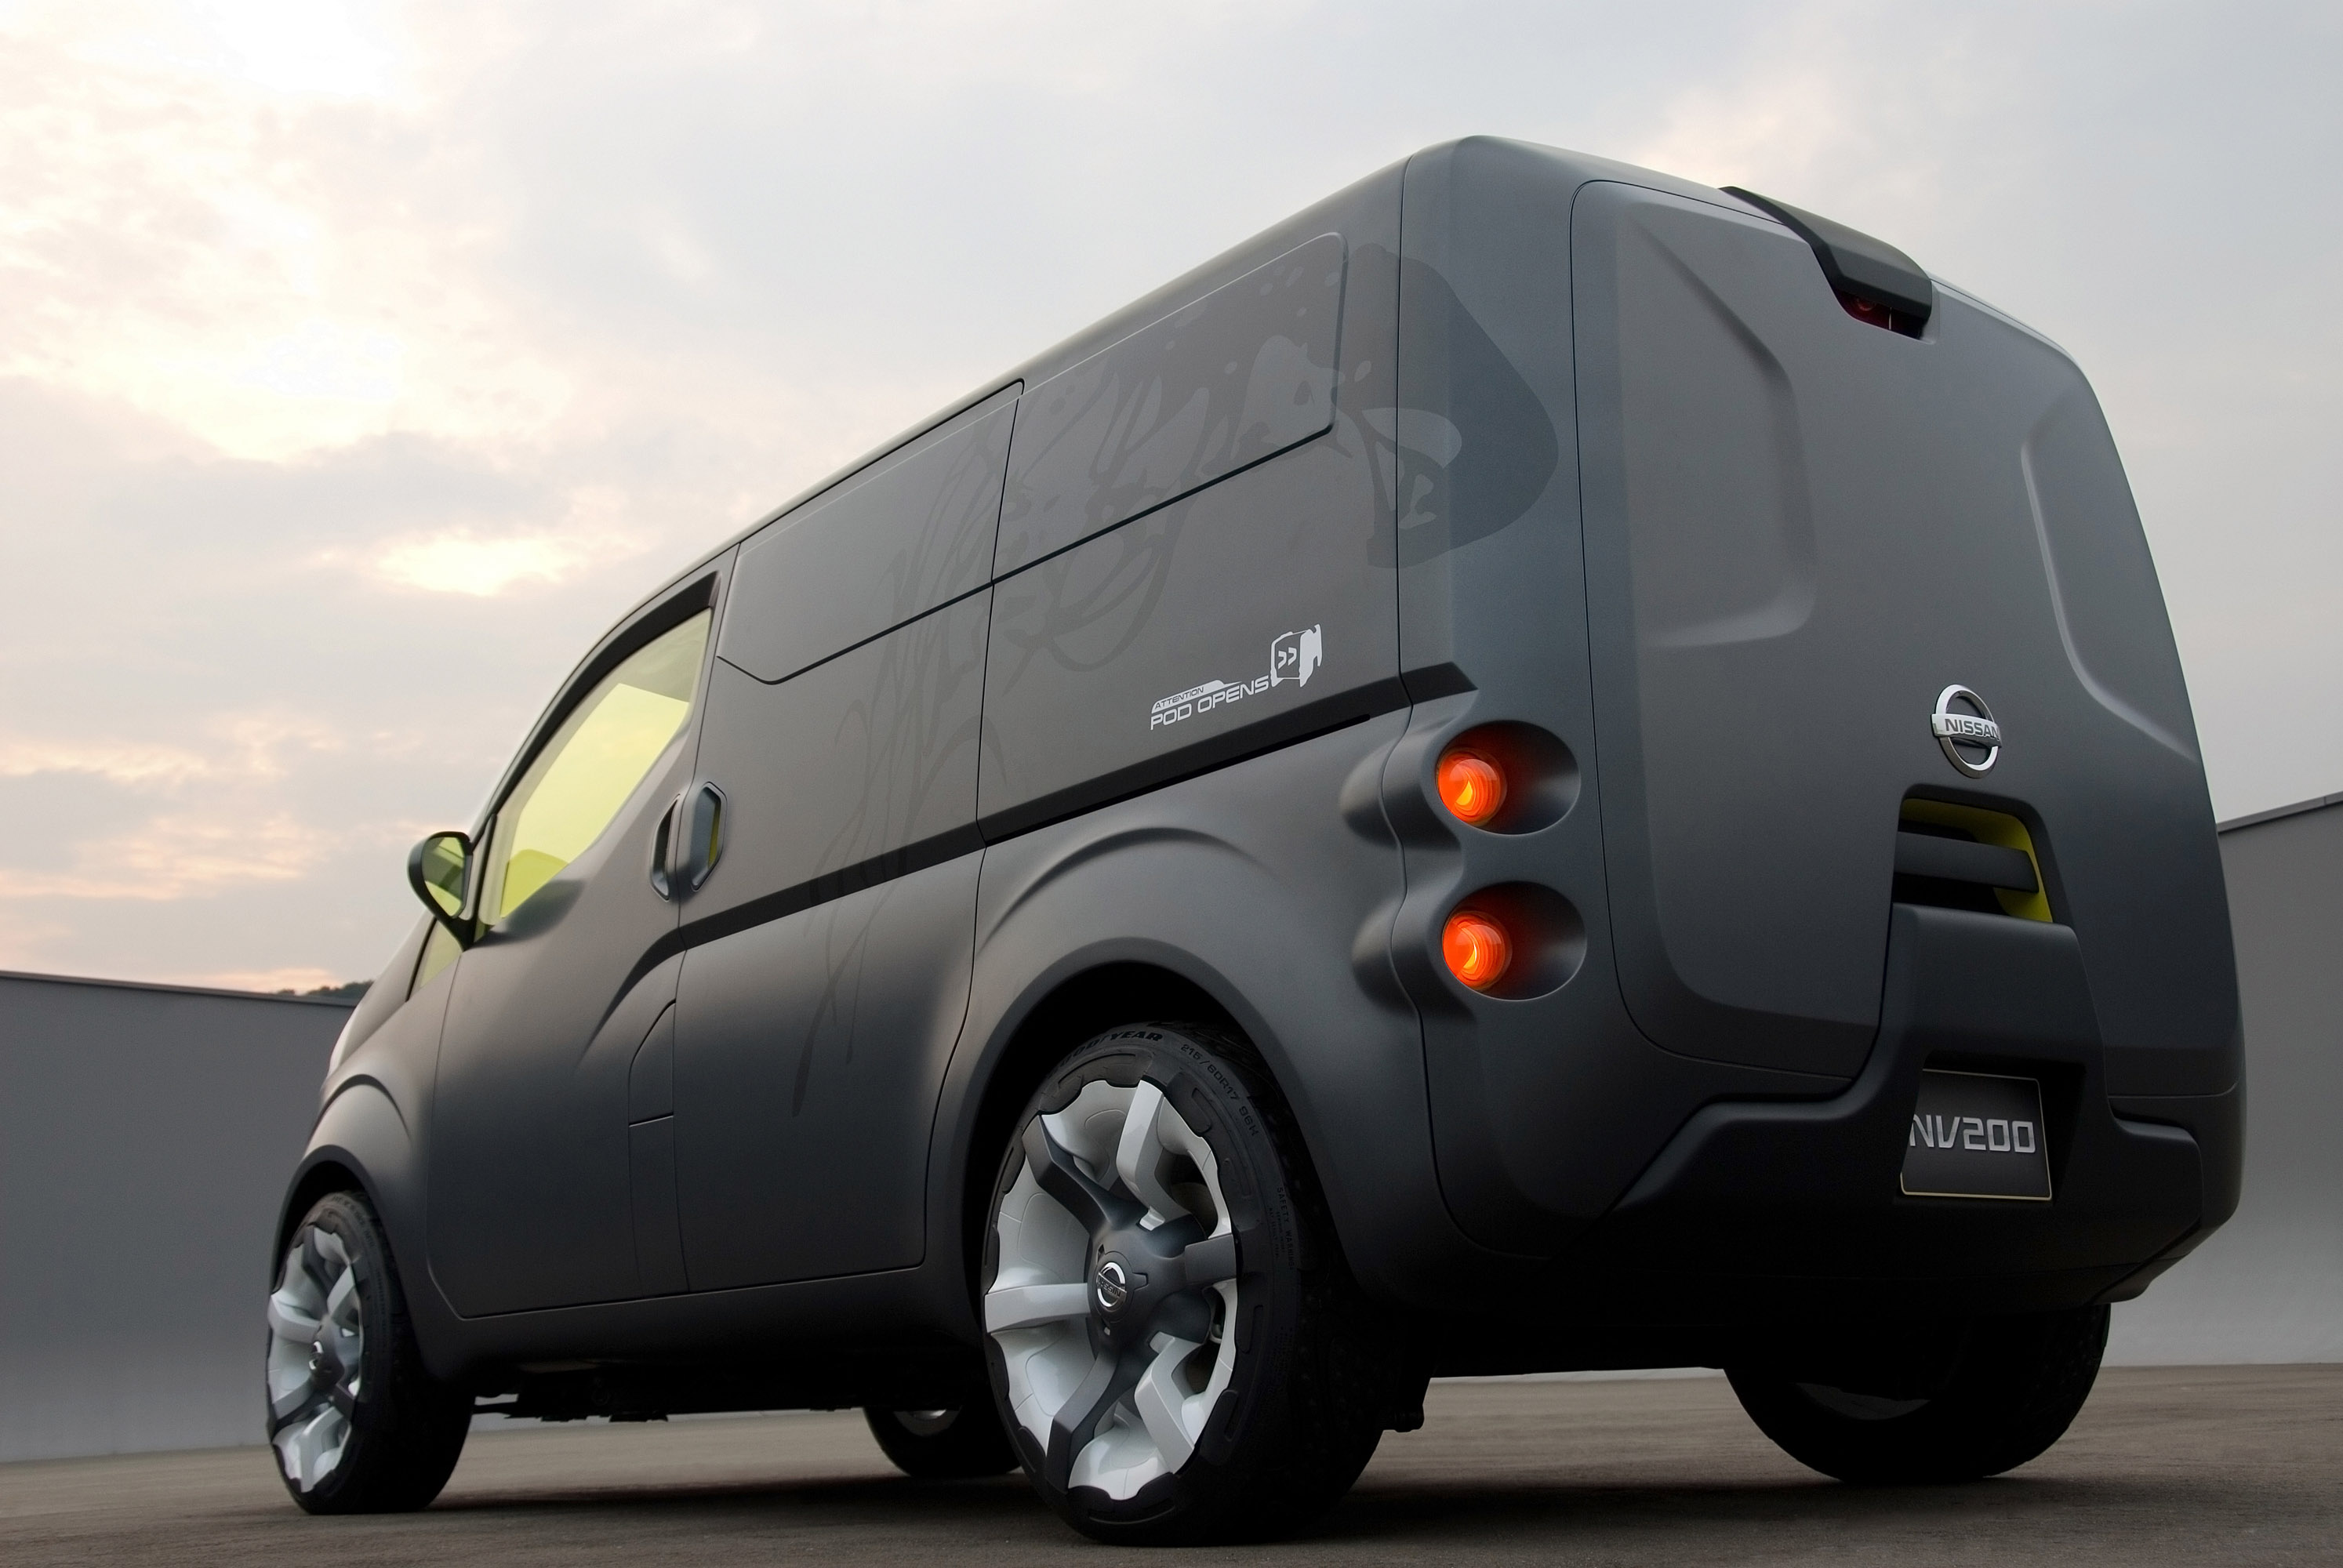 """Nissan Nv Passenger Van >> Nissan NV200 Concept Brings """"Human Touch"""" And Personalization To The Small Commercial Van Segment"""